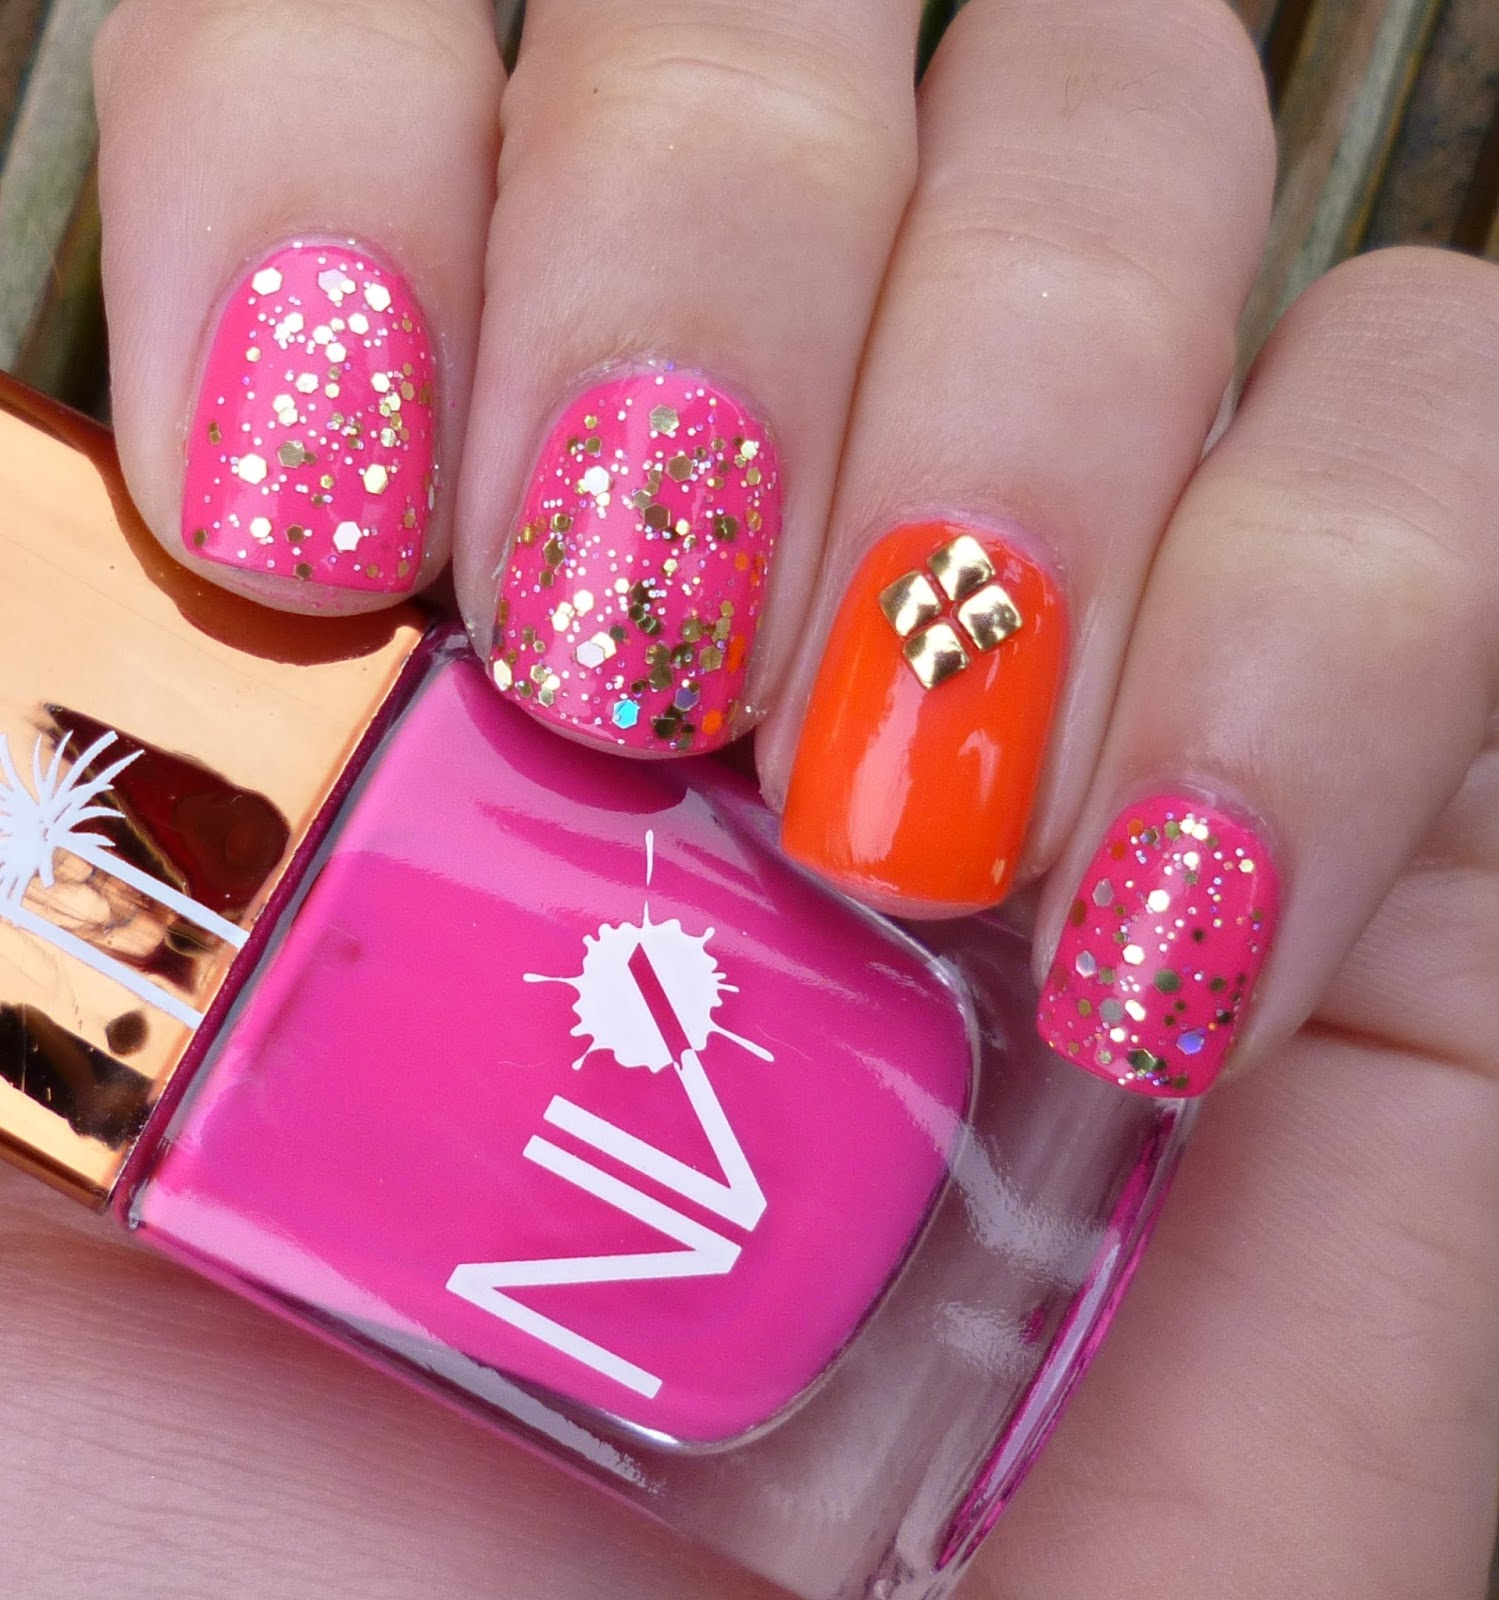 Lou is Perfectly Polished: Pink and Orange: Same Accent Nail